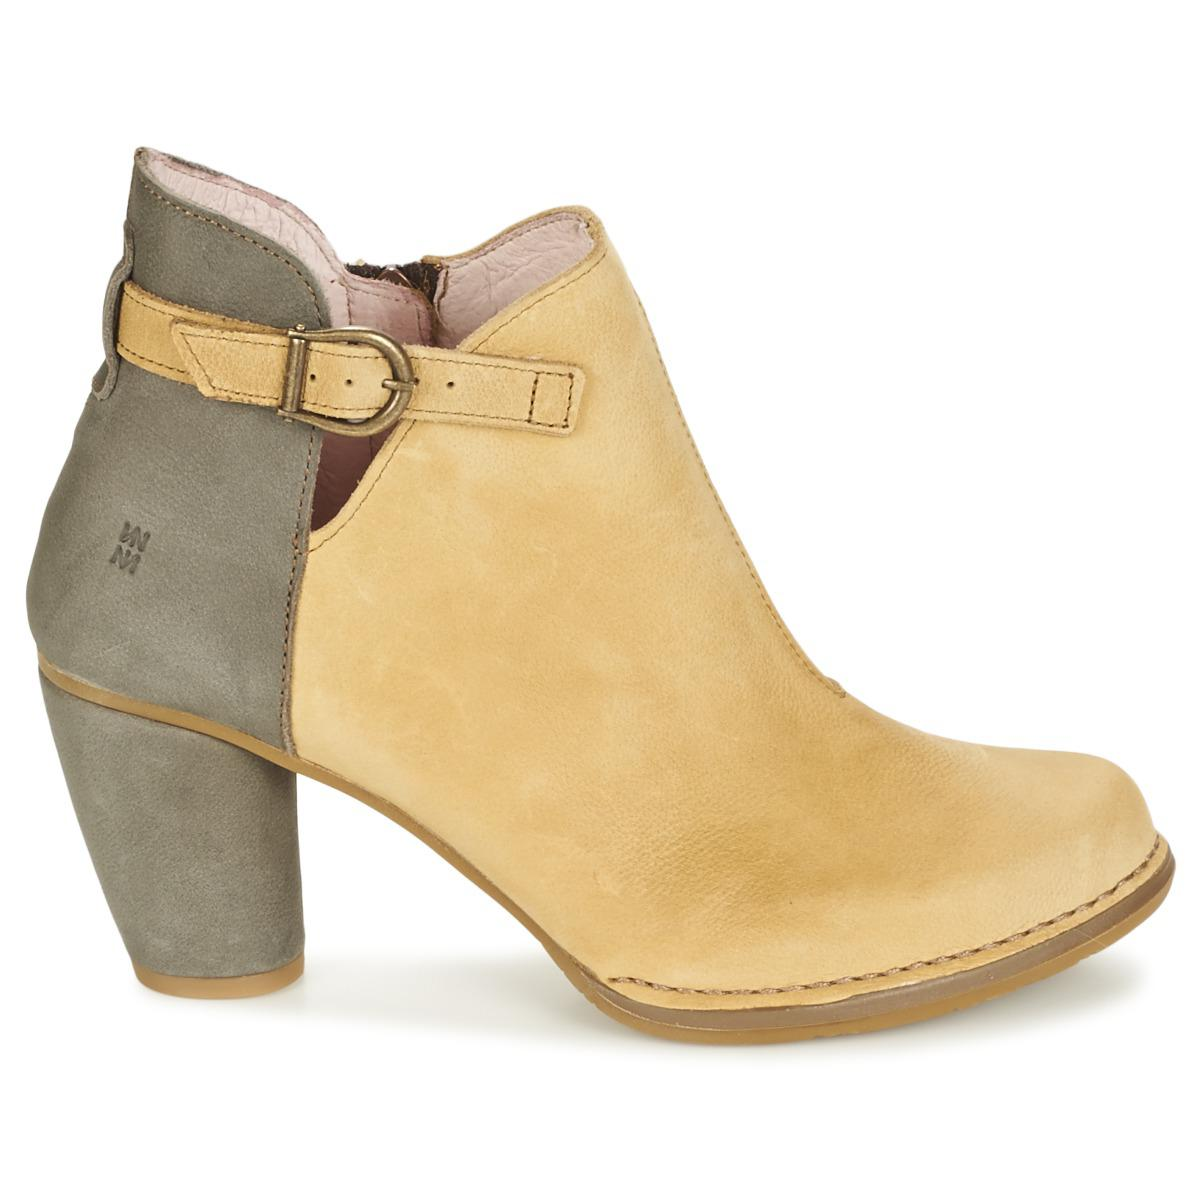 El Naturalista Colibri Low Ankle Boots in Yellow